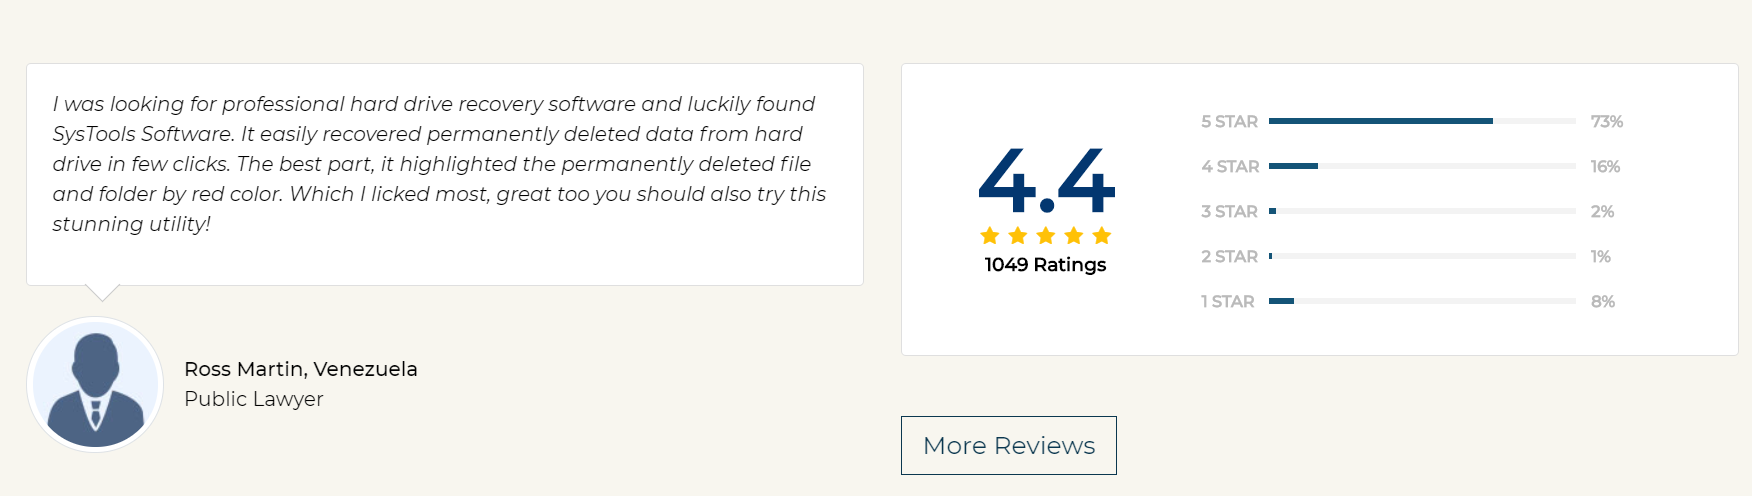 Hard Drive Data Recovery Review - CUstomer Review